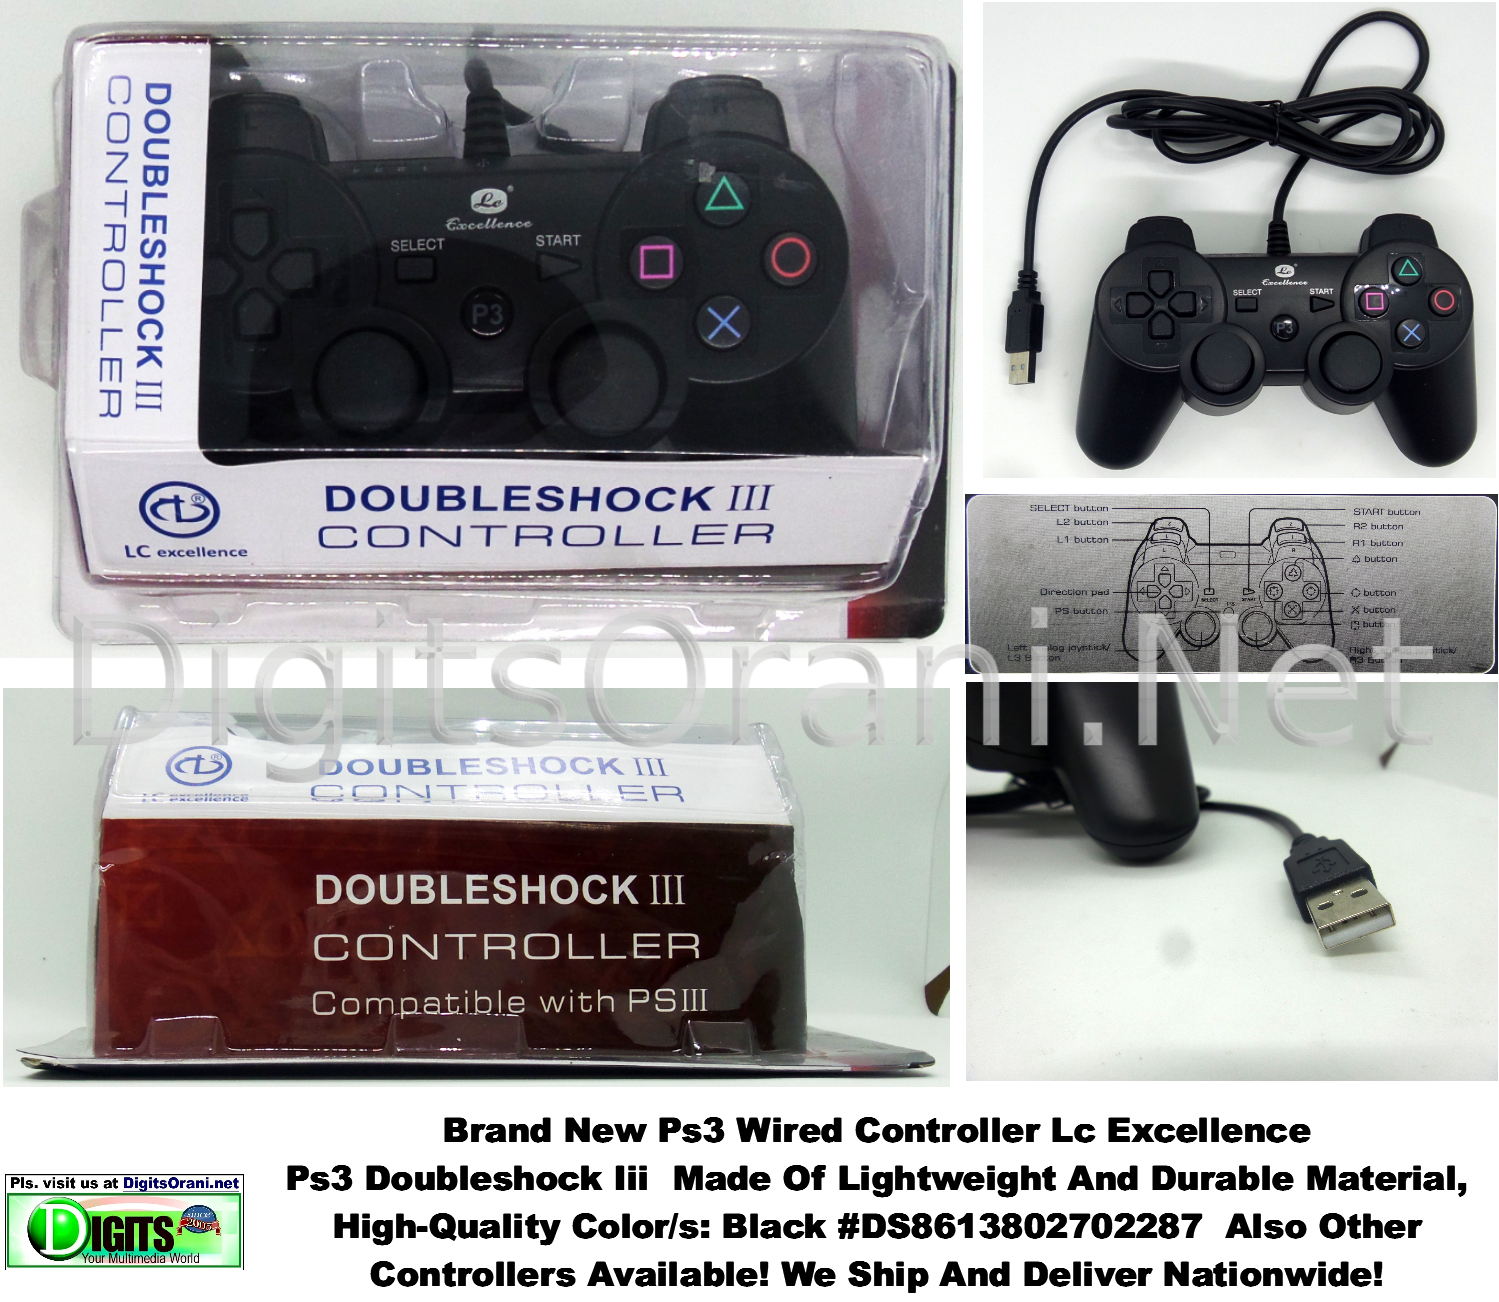 Controller / Ps3 wired / Lc Excellence Doubleshock Iii Made Of ...